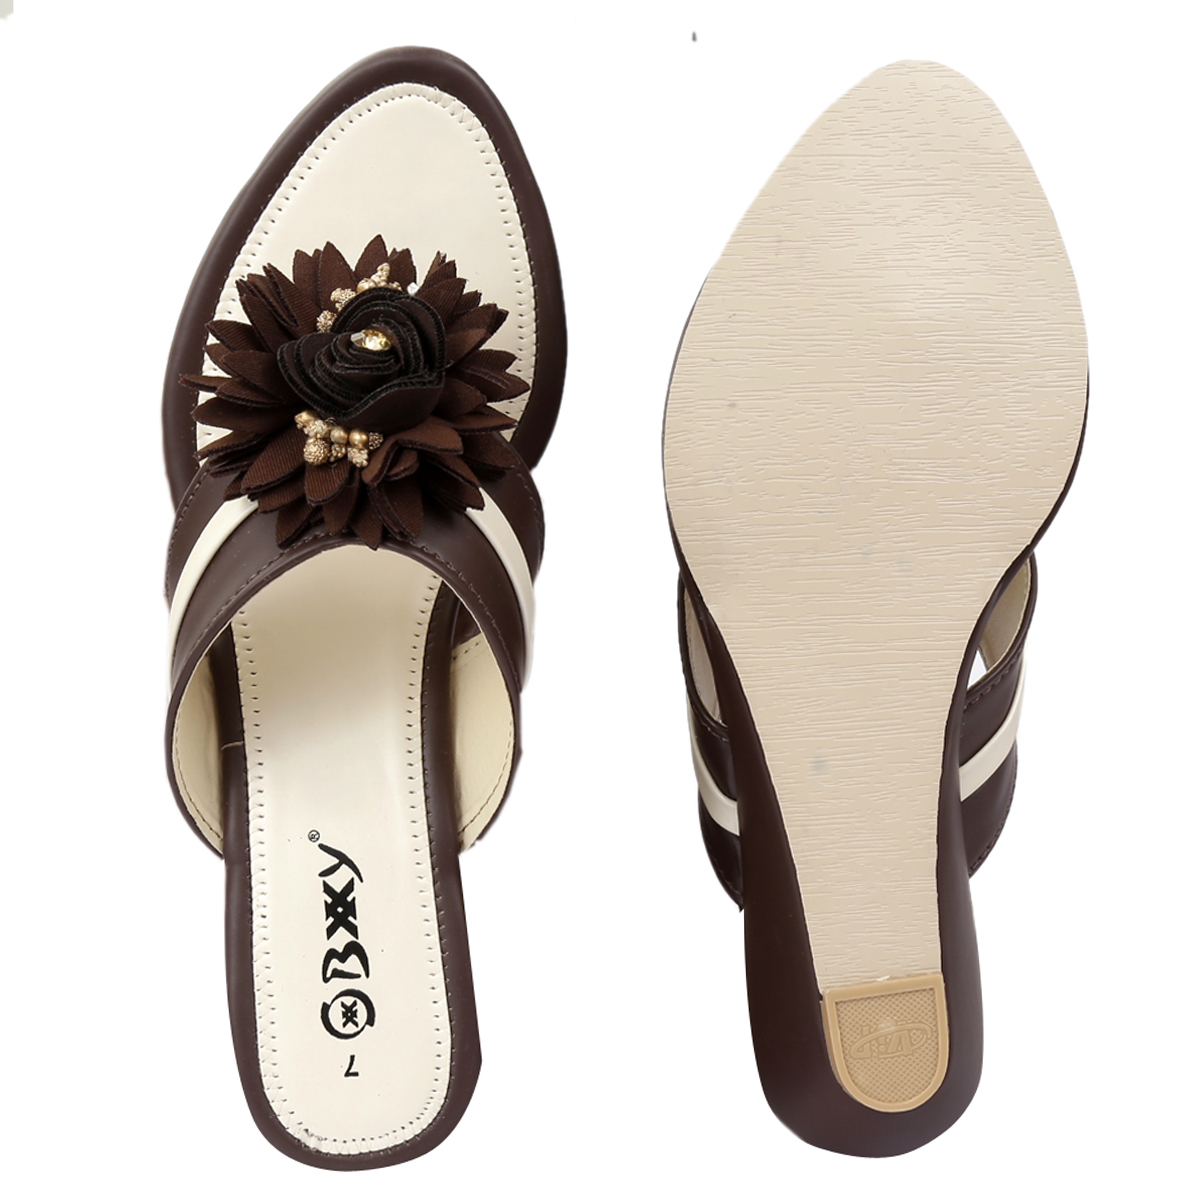 Leatherite Heels & Wedges for Women's and Girls